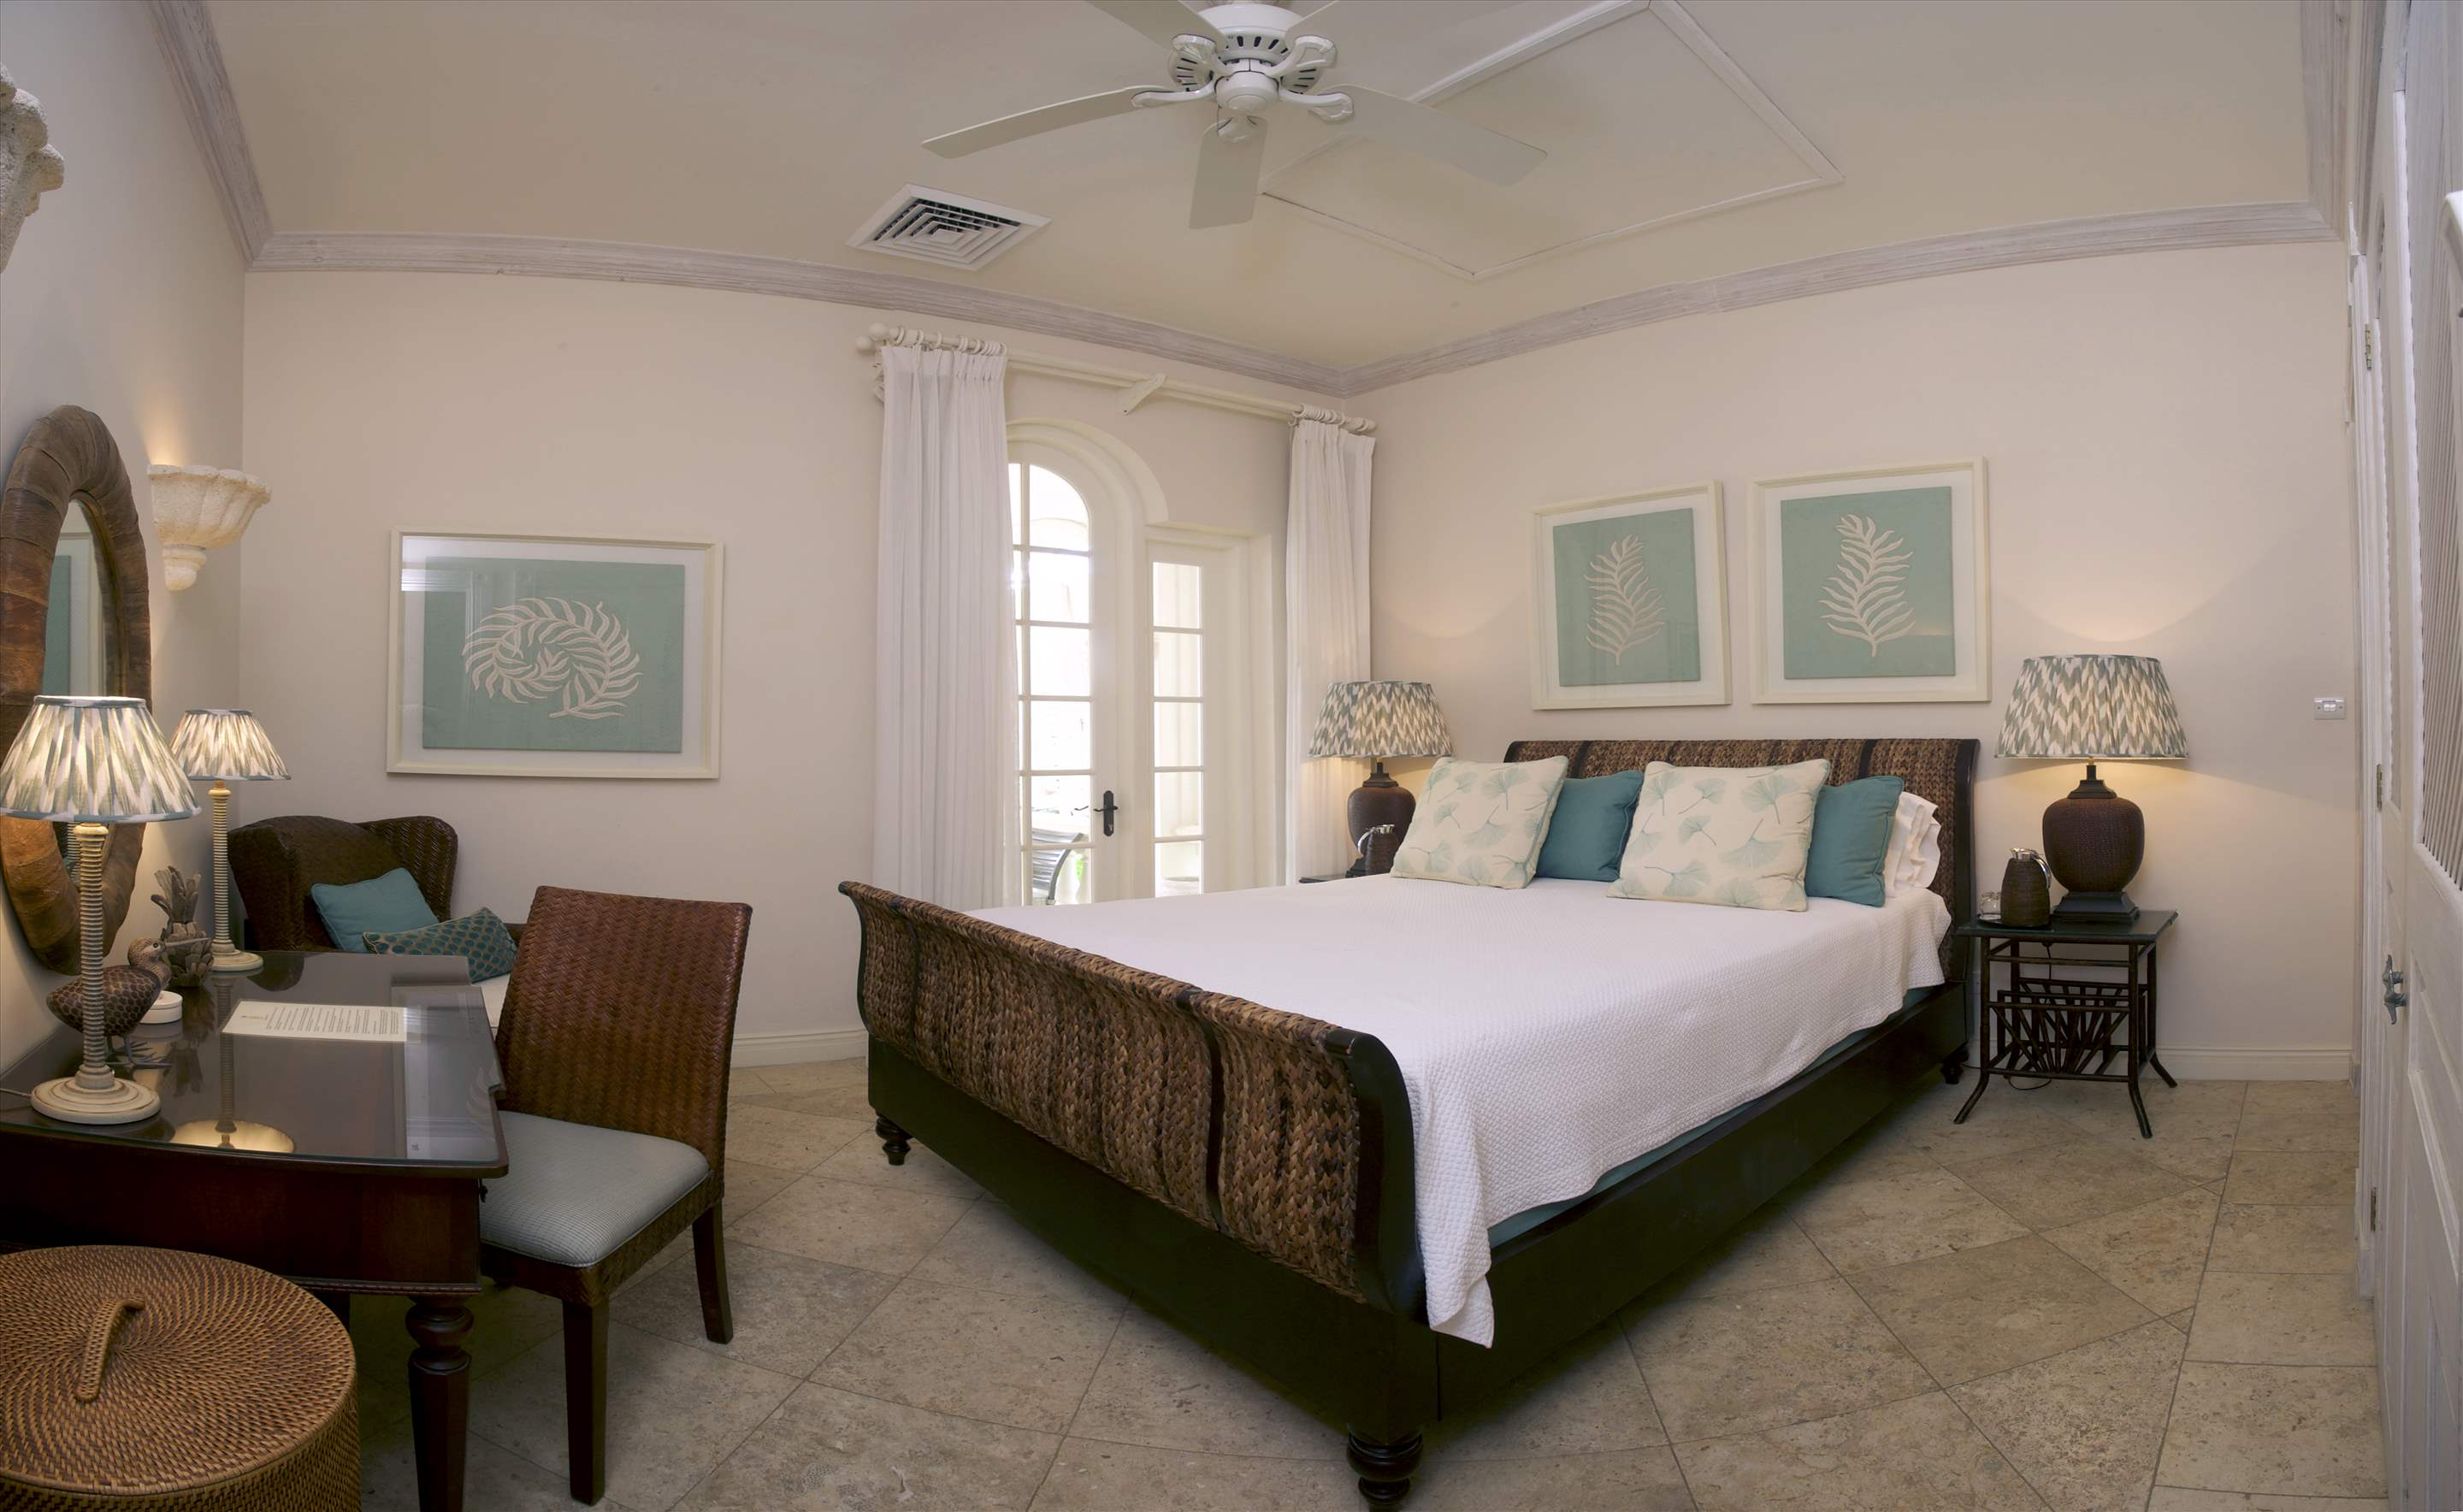 Plantation House, Royal Westmoreland, 6 bedroom, 6 bedroom villa in St. James & West Coast, Barbados Photo #16